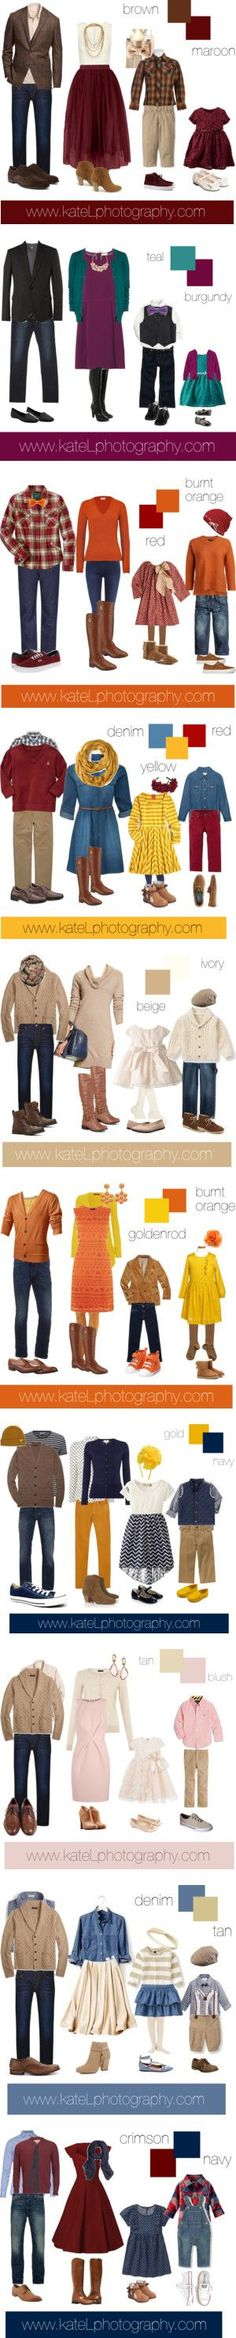 What to Wear for Fall Family Photos by katelphoto on Polyvore featuring мода, Alice + Olivia, G-Star Raw, Brooks Brothers, Rosantica, Wrangler, Tods, Report, Il Gufo and Tory Burch